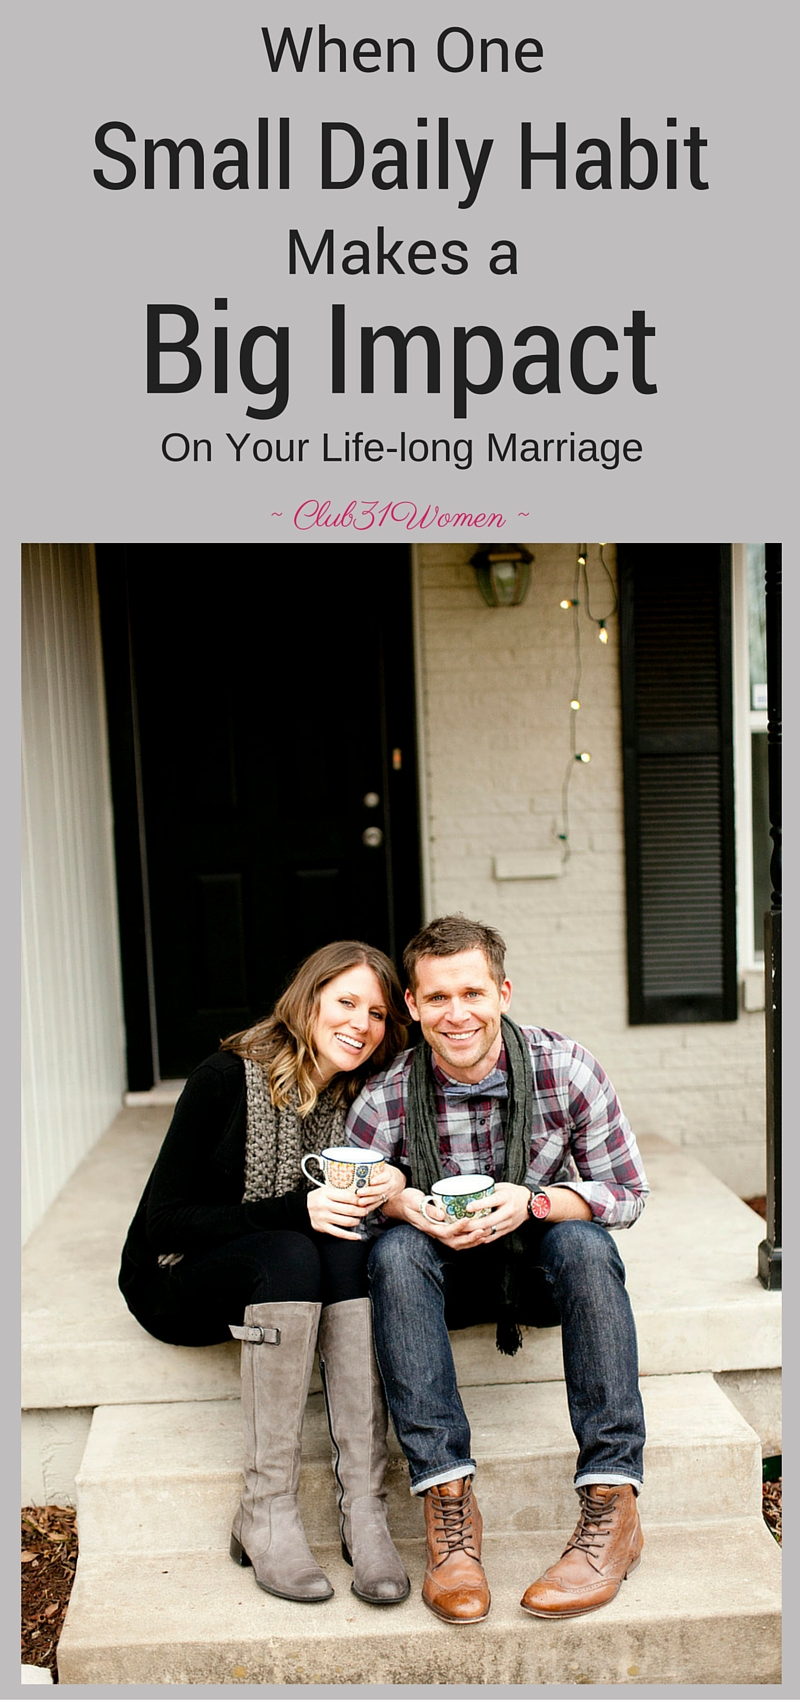 What if there was just one thing you could do to make a real impact on your marriage? A daily habit that makes for a happier, lifelong marriage? ~ Club31Women